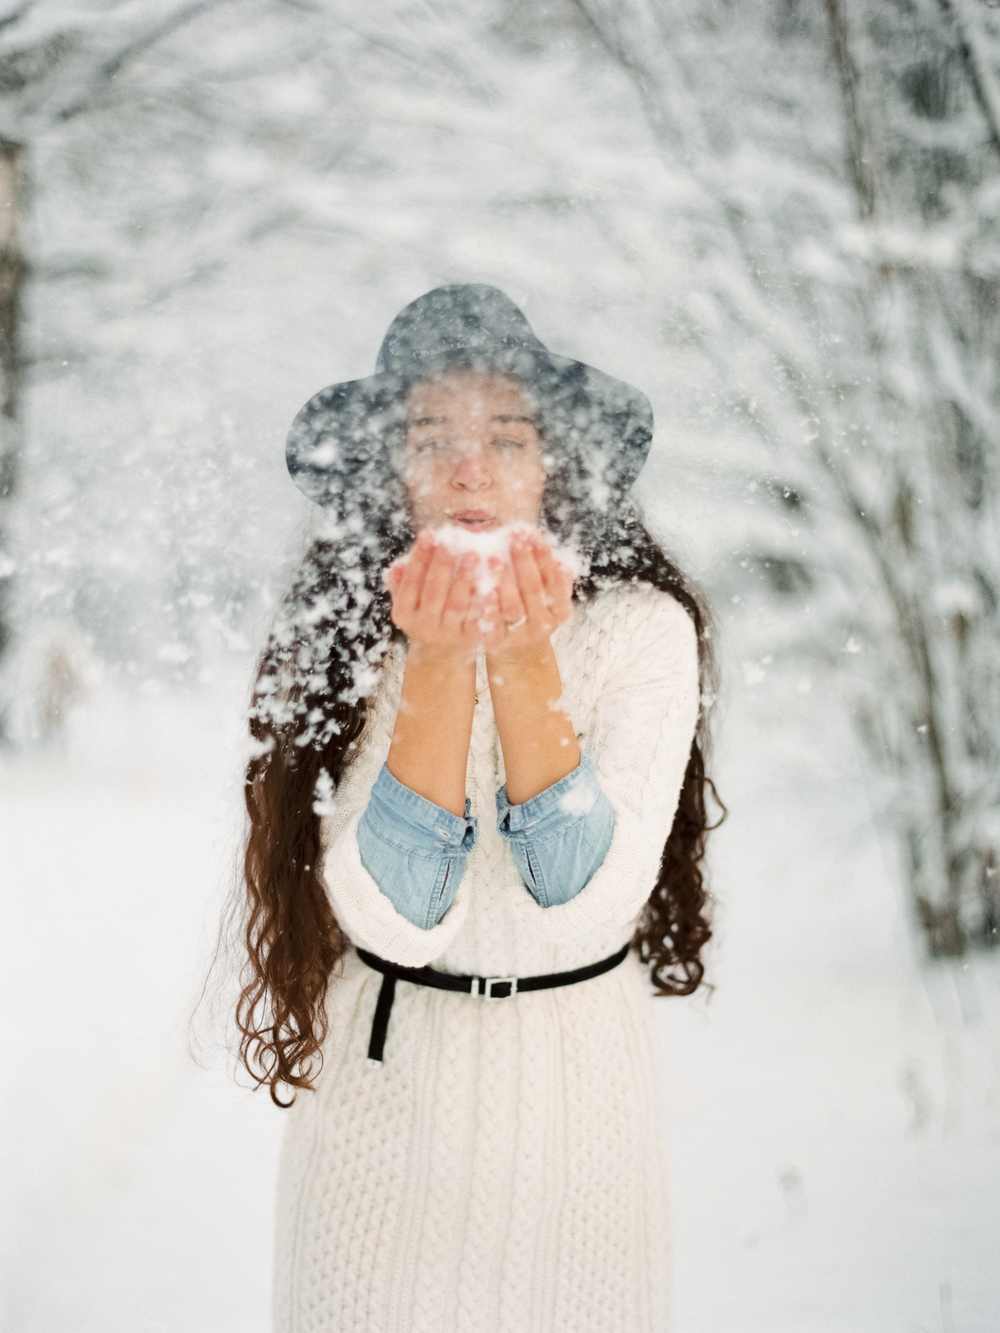 Tamara Gigola Photography winter shoot. Duet Postscriptum. Moscow. Russia. -0004-5.JPG